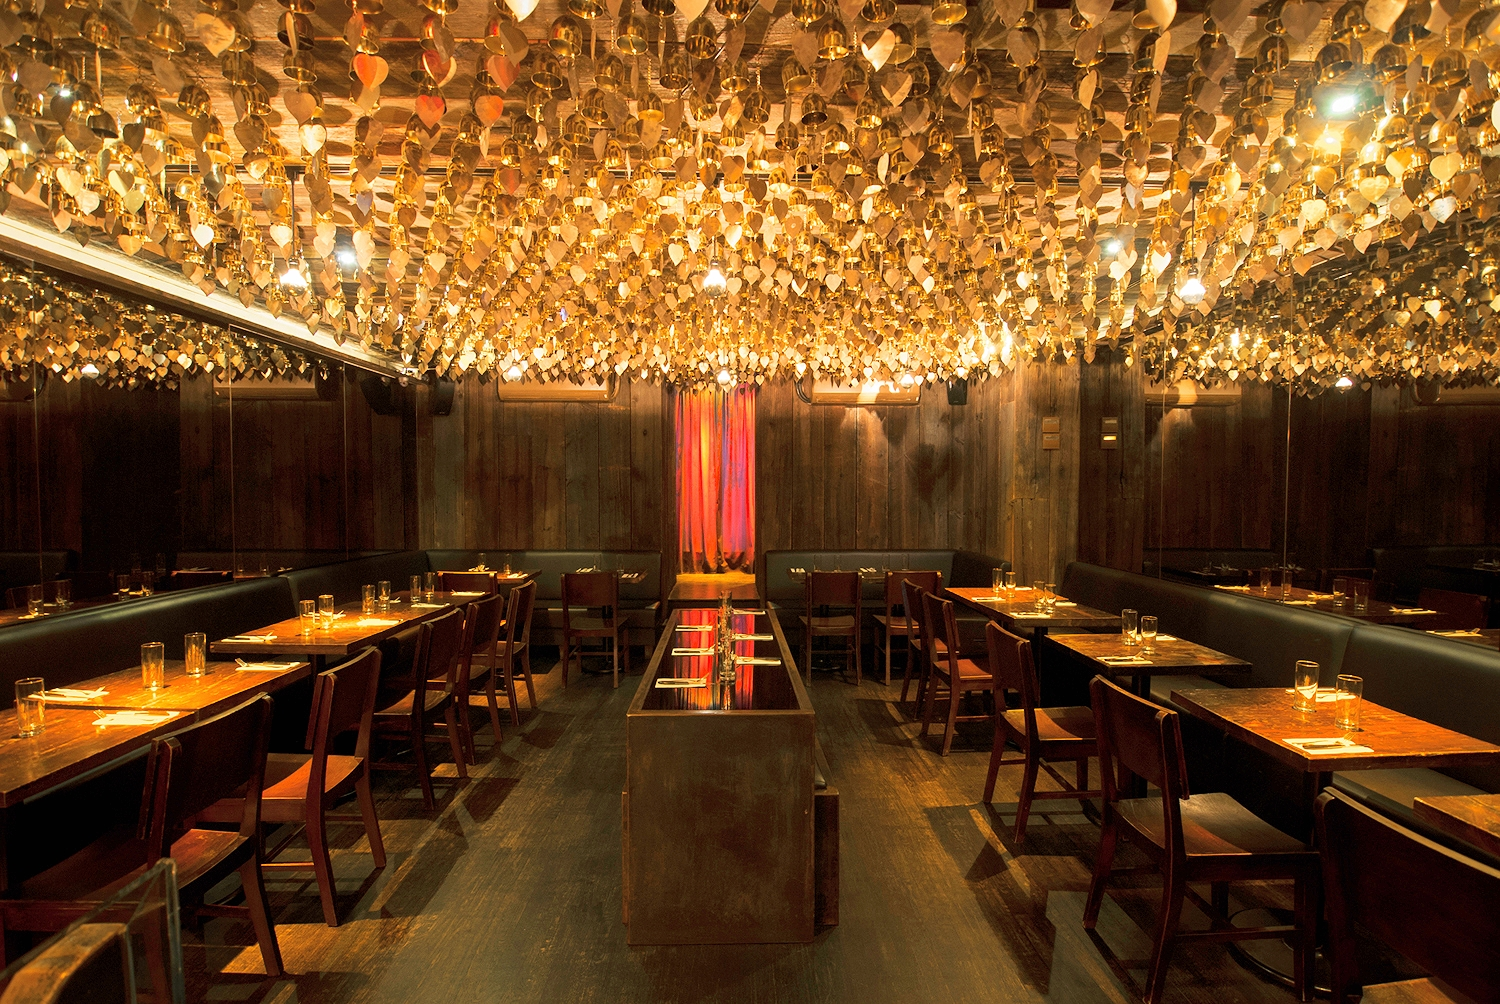 Golden bell room at Hell's kitchen